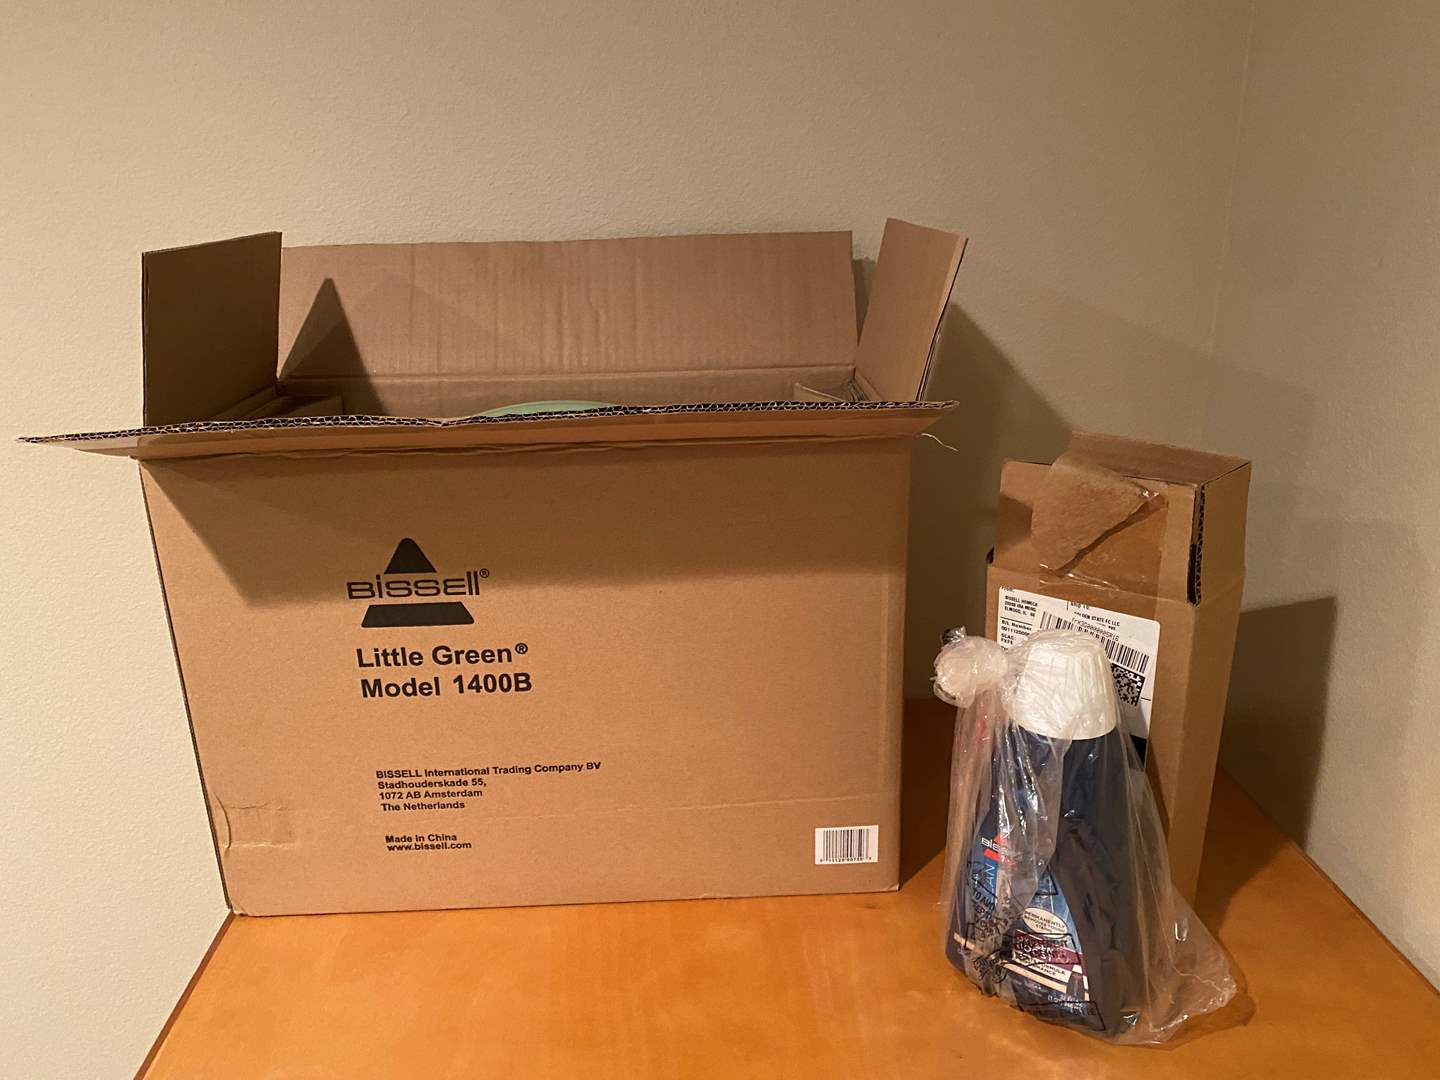 Lot # 154 - New in Box Bissell Little Green Carpet Cleaner w/ Bottle of Shampoo - (Model - 1400B) (main image)